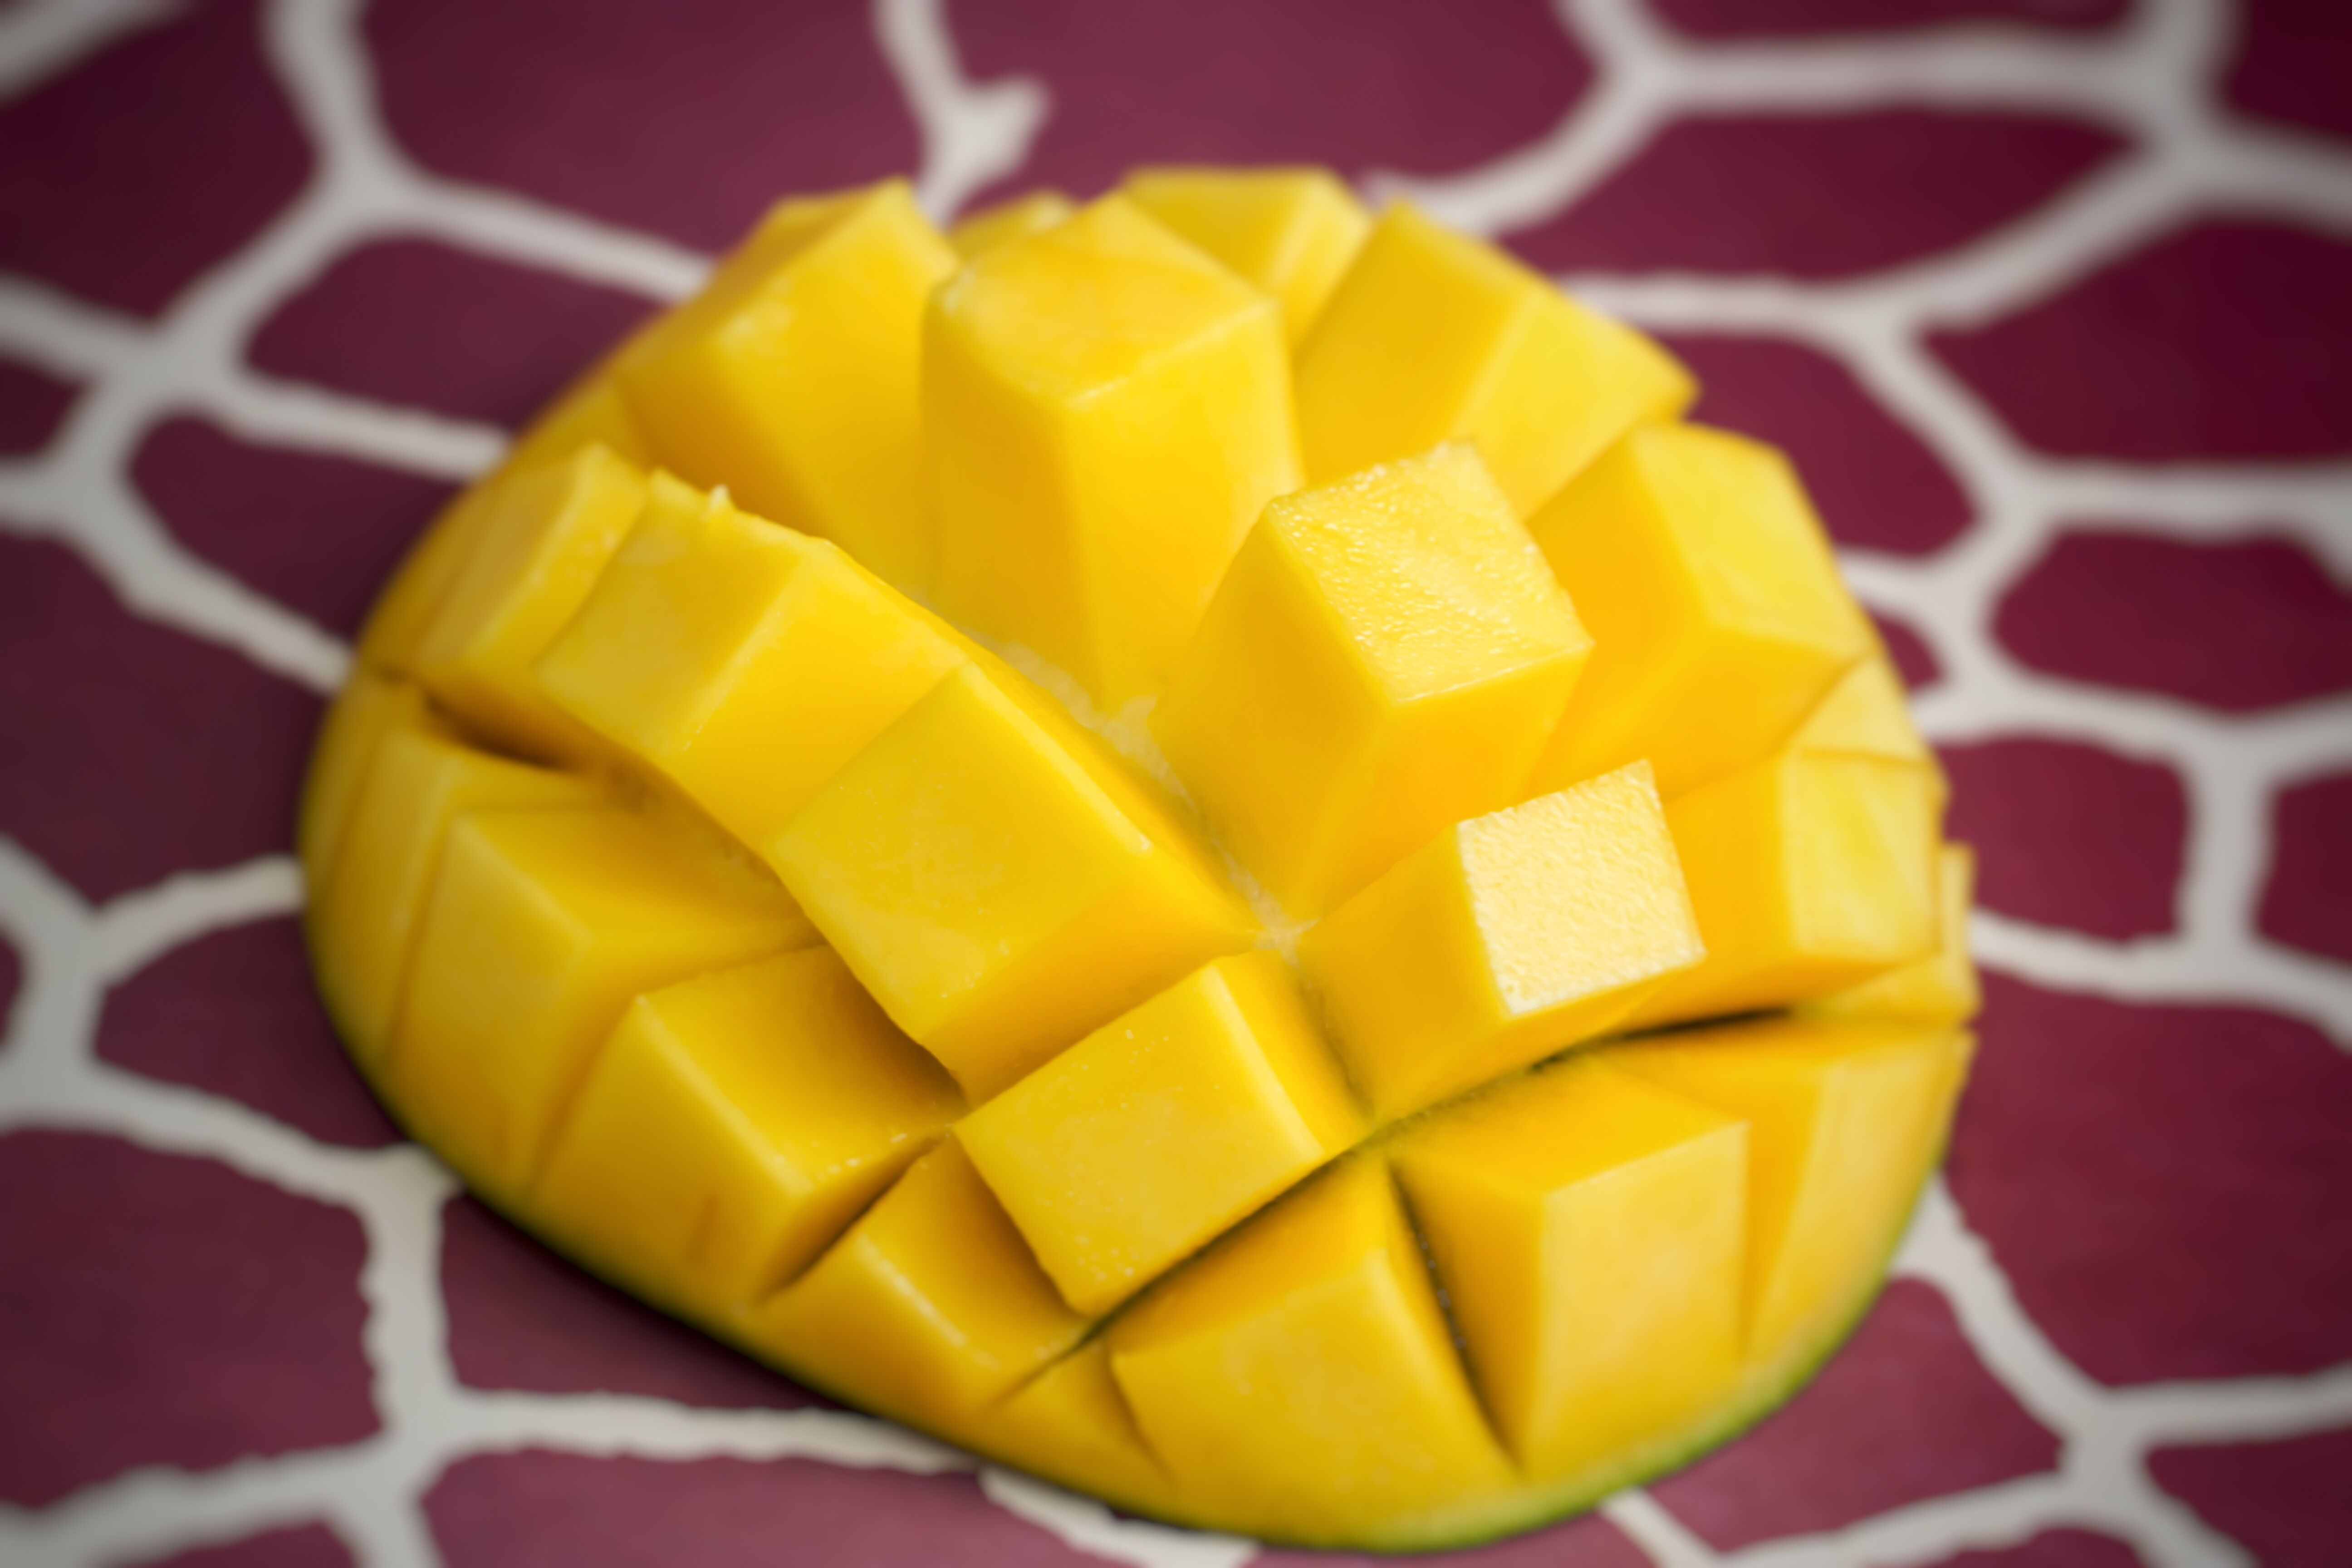 Is mango skin as poisonous as poison ivy ccuart Choice Image